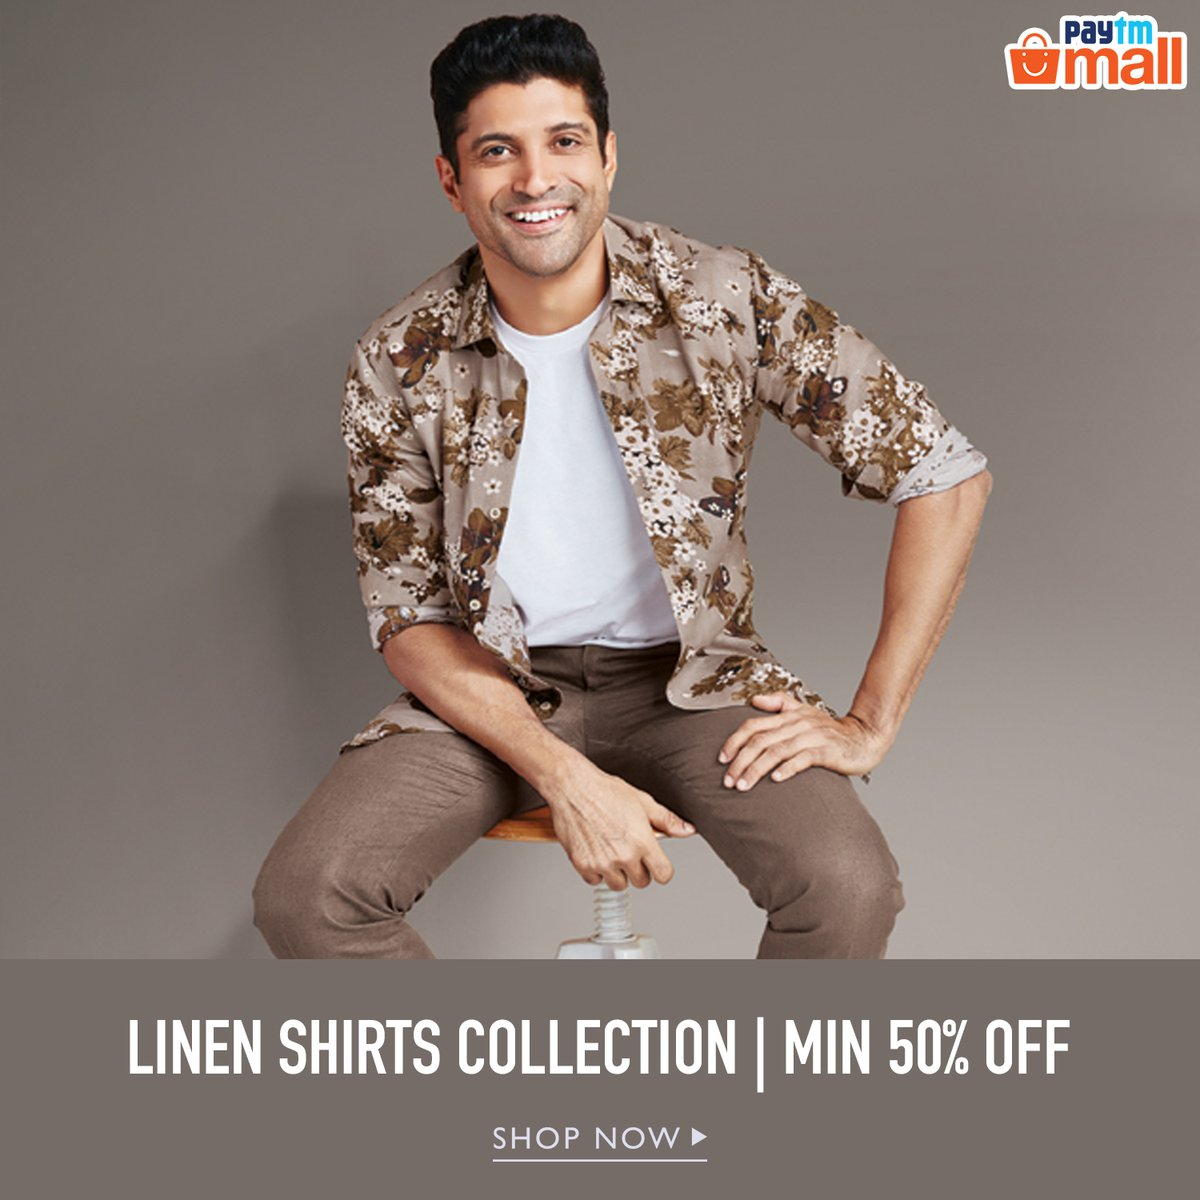 Linen Shirts can never go out of fashion and we are good with it. Own this linen shirt at minimum 50% OFF from Paytm Mall now!!   Follow the link:   #fashion #bestoftheday #2020 #followus #followformore #PaytmMall